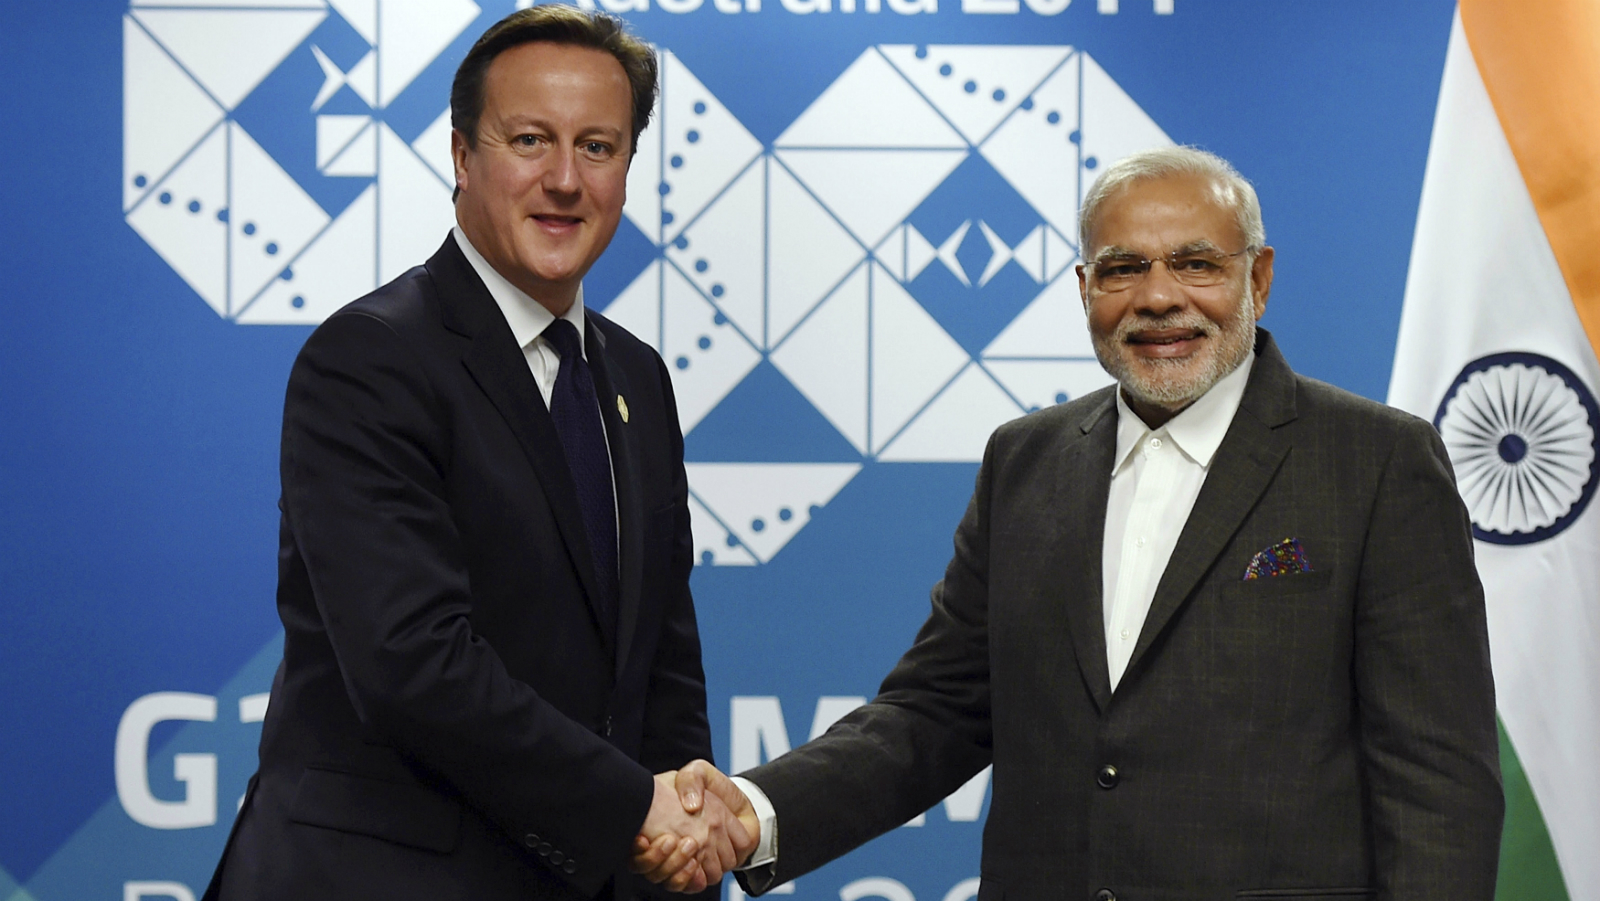 British Prime Minister David Cameron (L) meets with Indian Prime Minister Narendra Modi at their bilateral meeting before the G20 leaders Summit in Brisbane, November 14, 2014. Leaders of the top 20 industrialized nations will gather in Brisbane November 15-16 for their annual G20 summit. REUTERS/Lukas Koch/pool (AUSTRALIA - Tags: POLITICS BUSINESS)